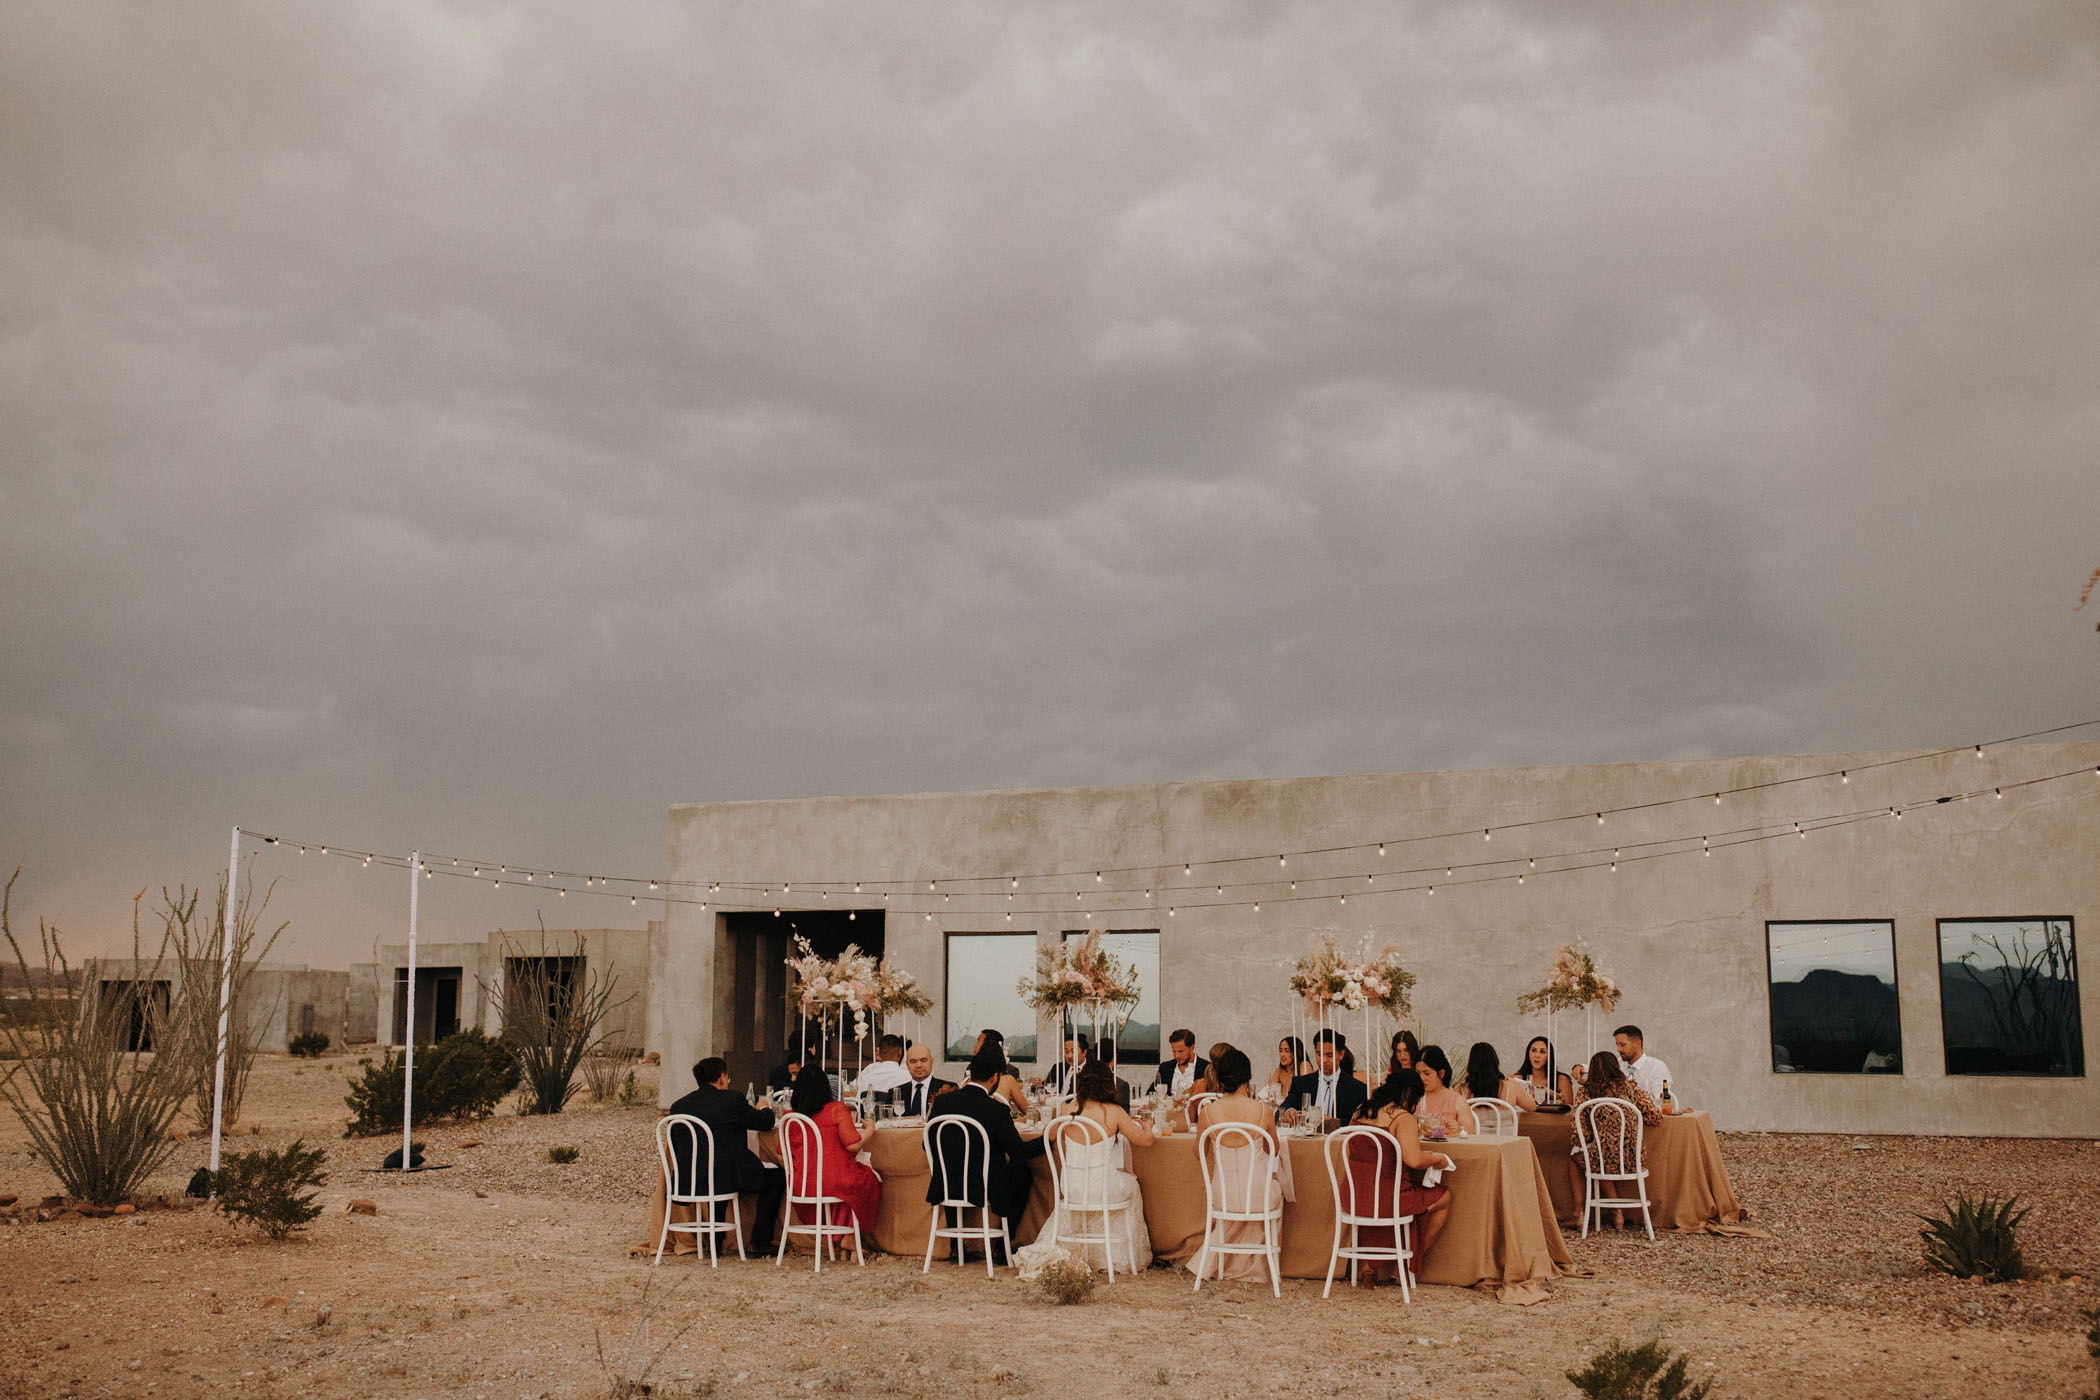 30 guests enjoying an outdoor wedding while a storm approaches